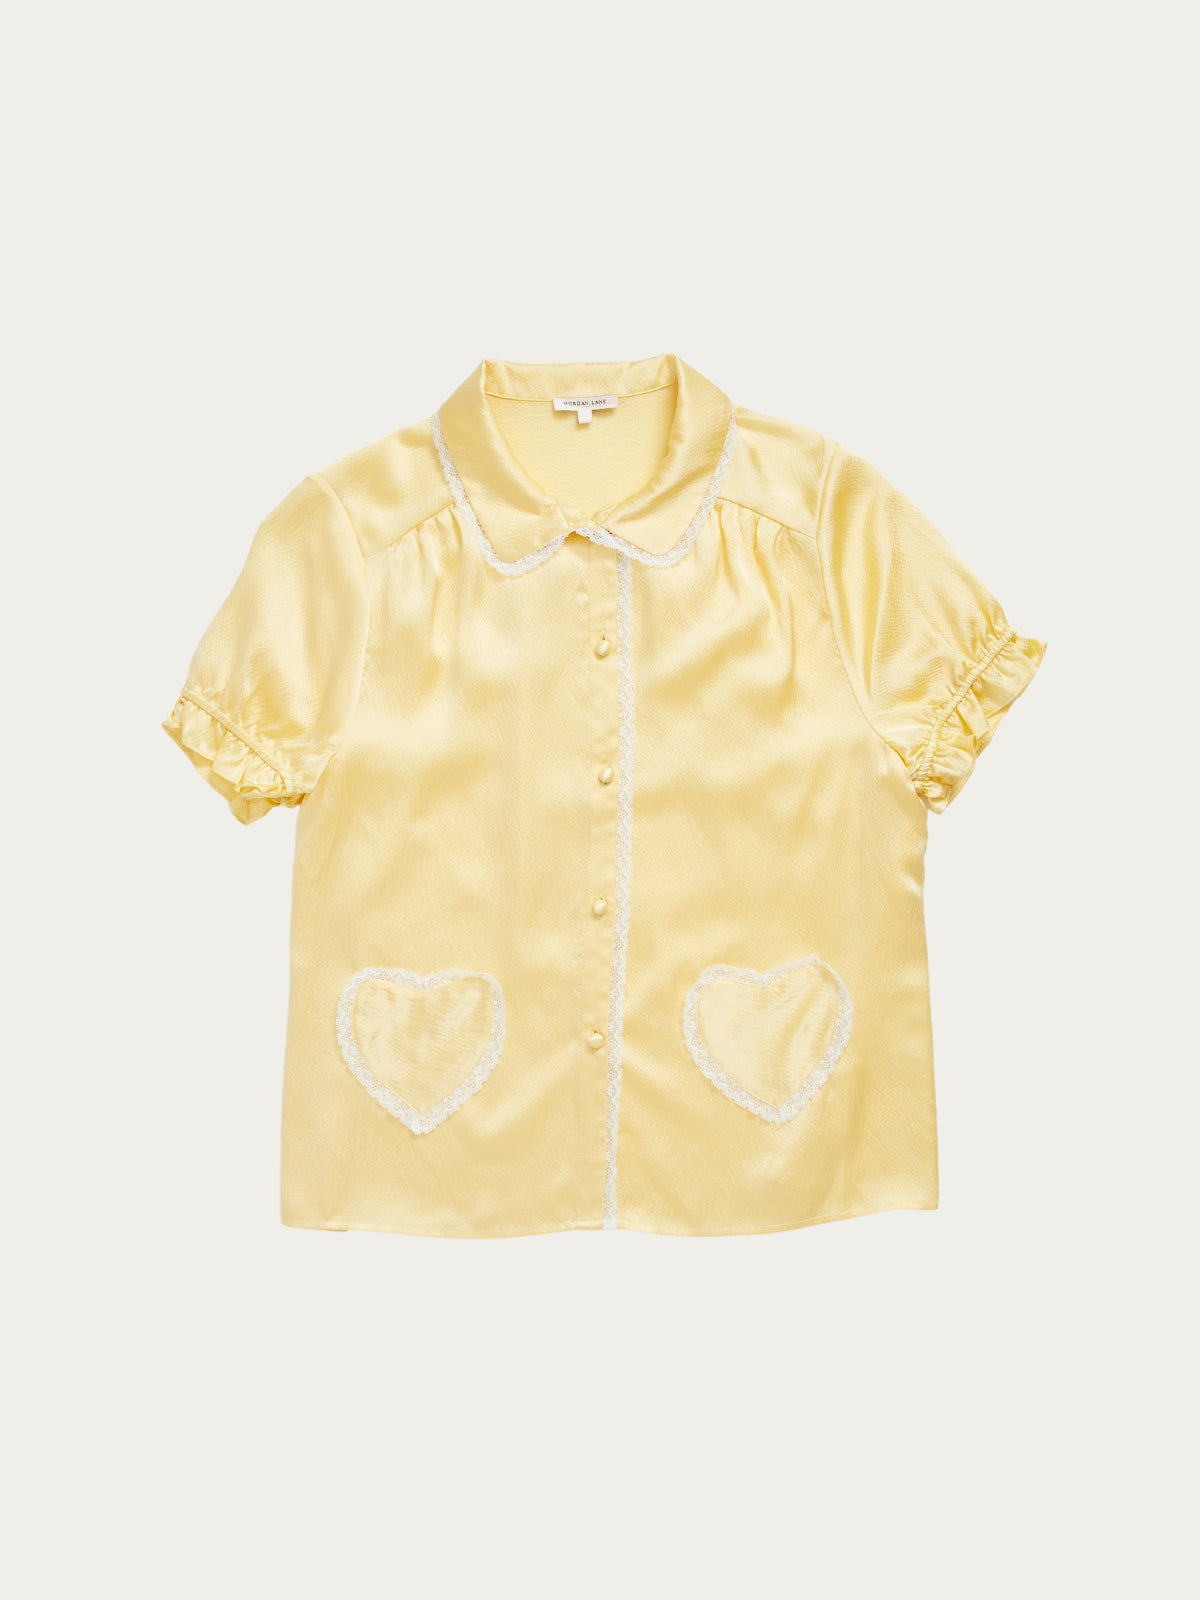 Lovie Top in Custard By Morgan Lane